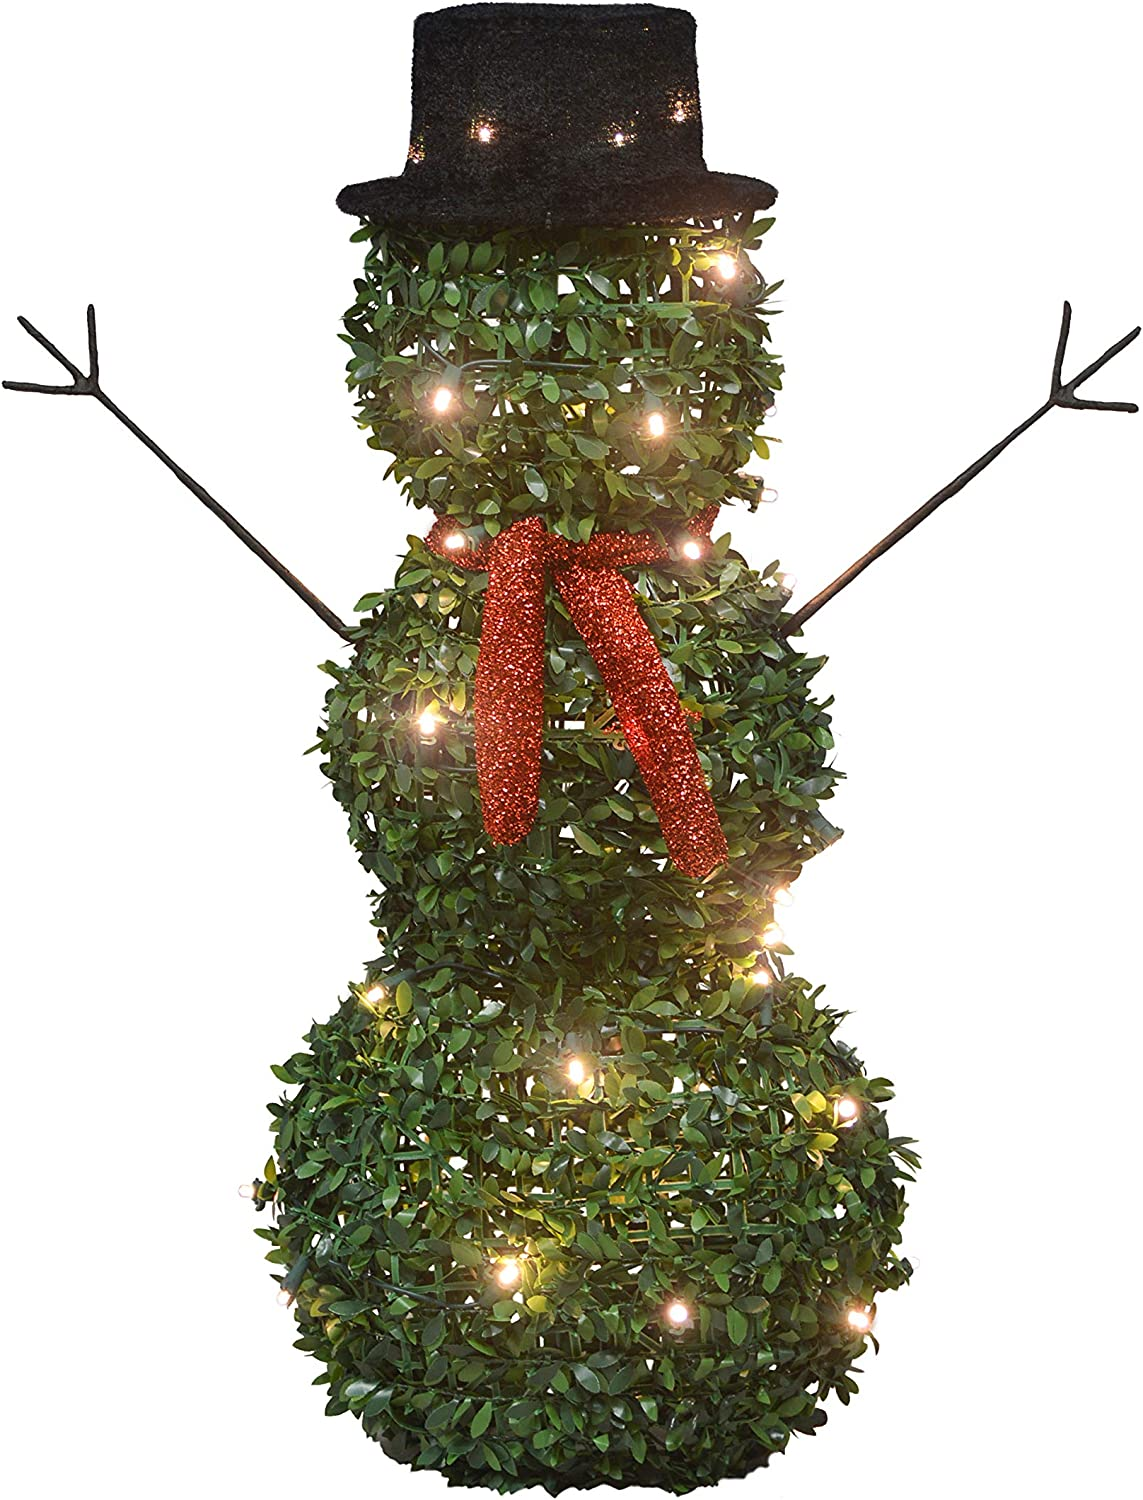 ProductWorks Max 44% OFF 17945 28-Inch Snowman Pre-Lit Max 47% OFF Artific Lights LED 40